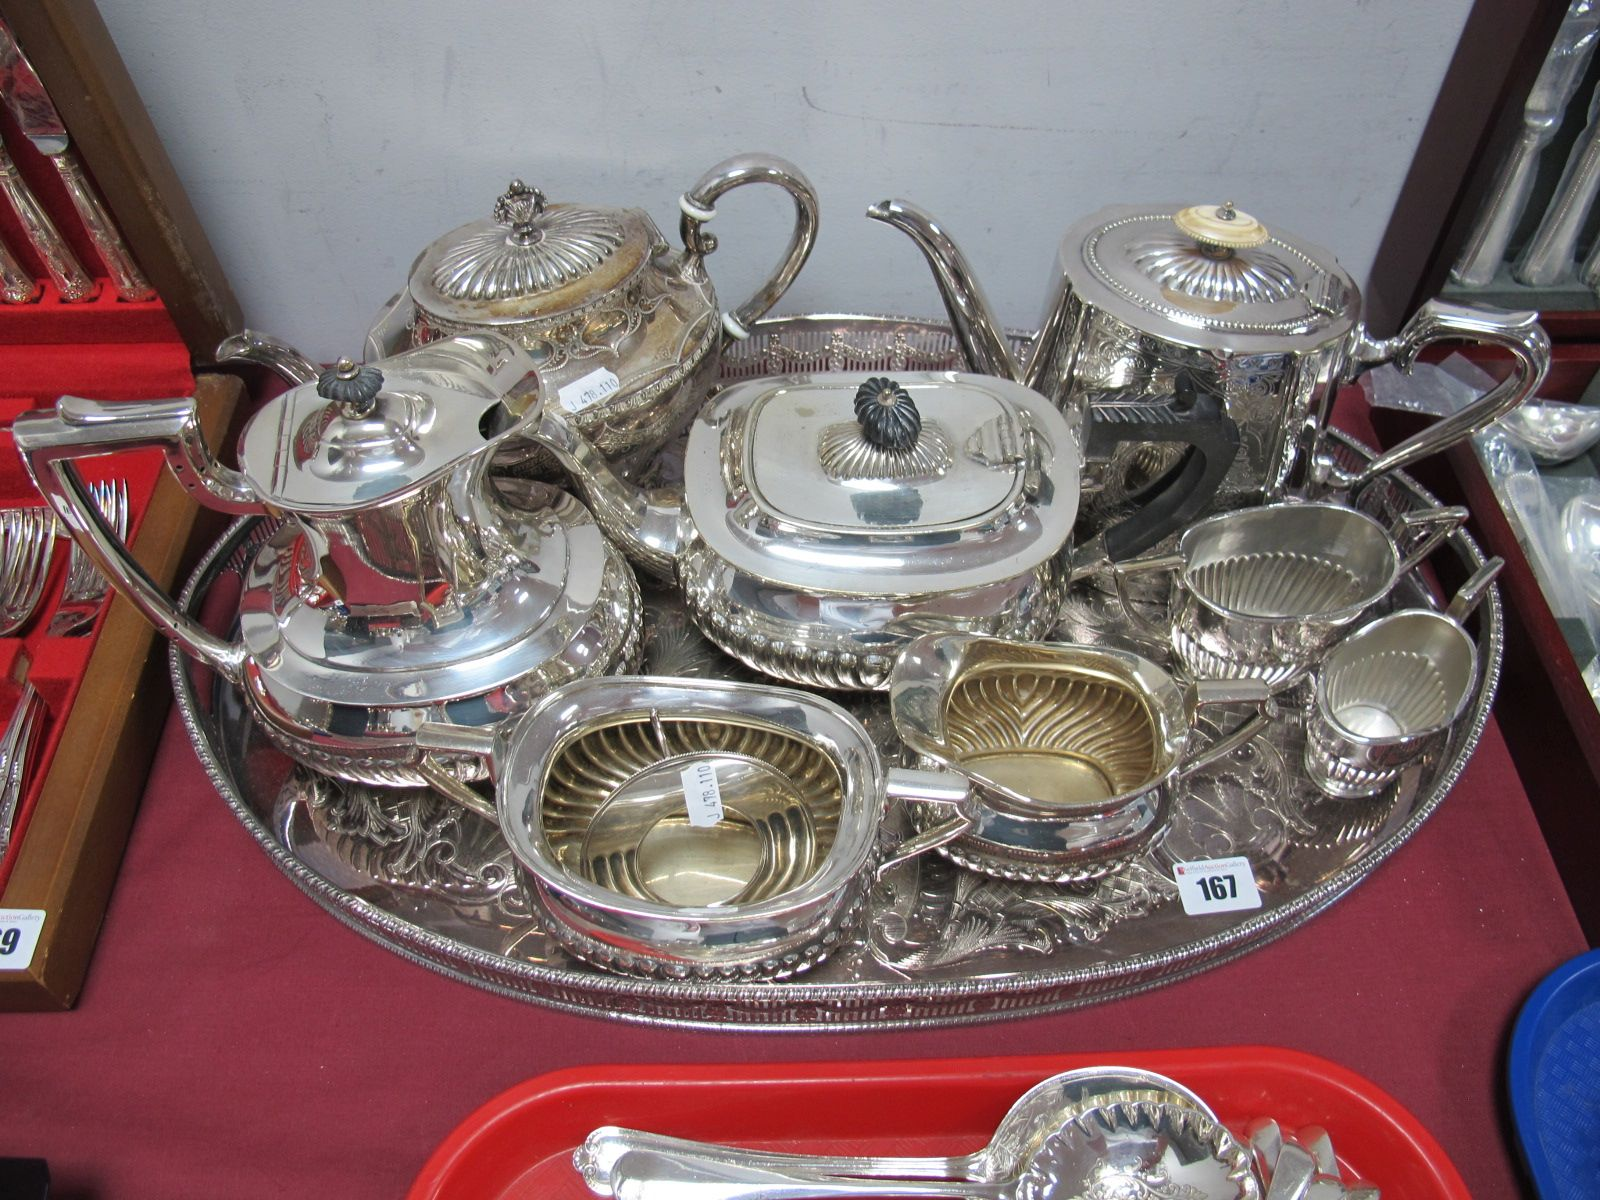 Lot 167 - Decorative Plated Teapots, jugs and sugar bowls, large oval tray, etc.